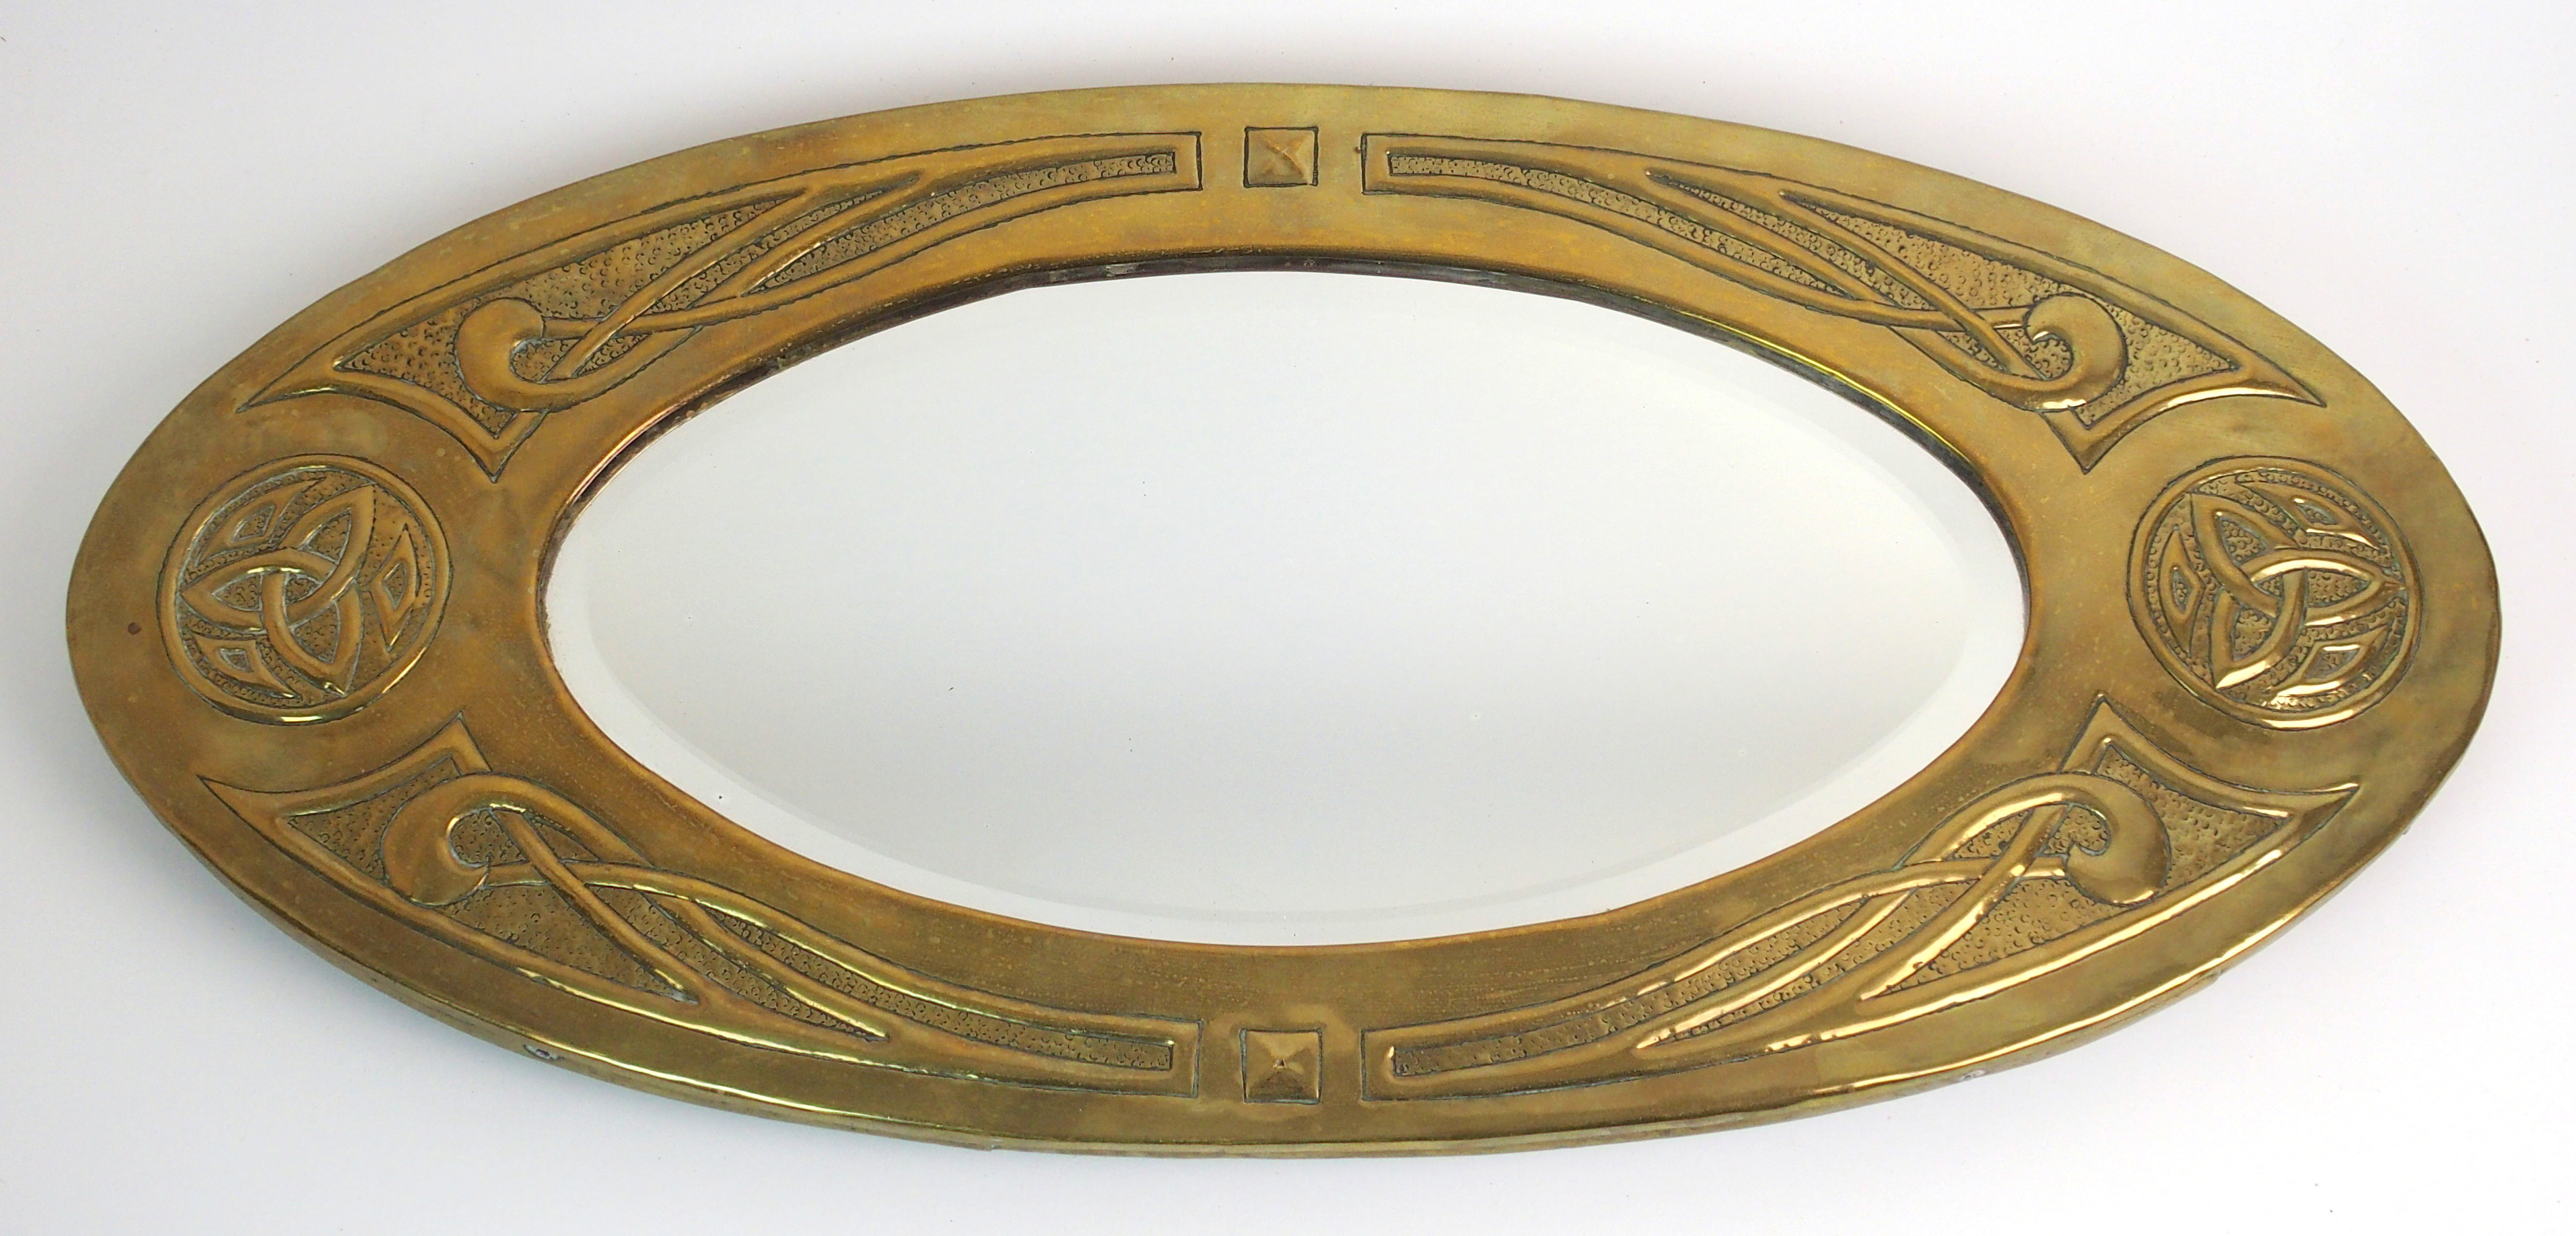 Arts and crafts mirrors - Lot 470 An Arts Crafts Margaret Gilmour Style Brass Mirror Oval Form